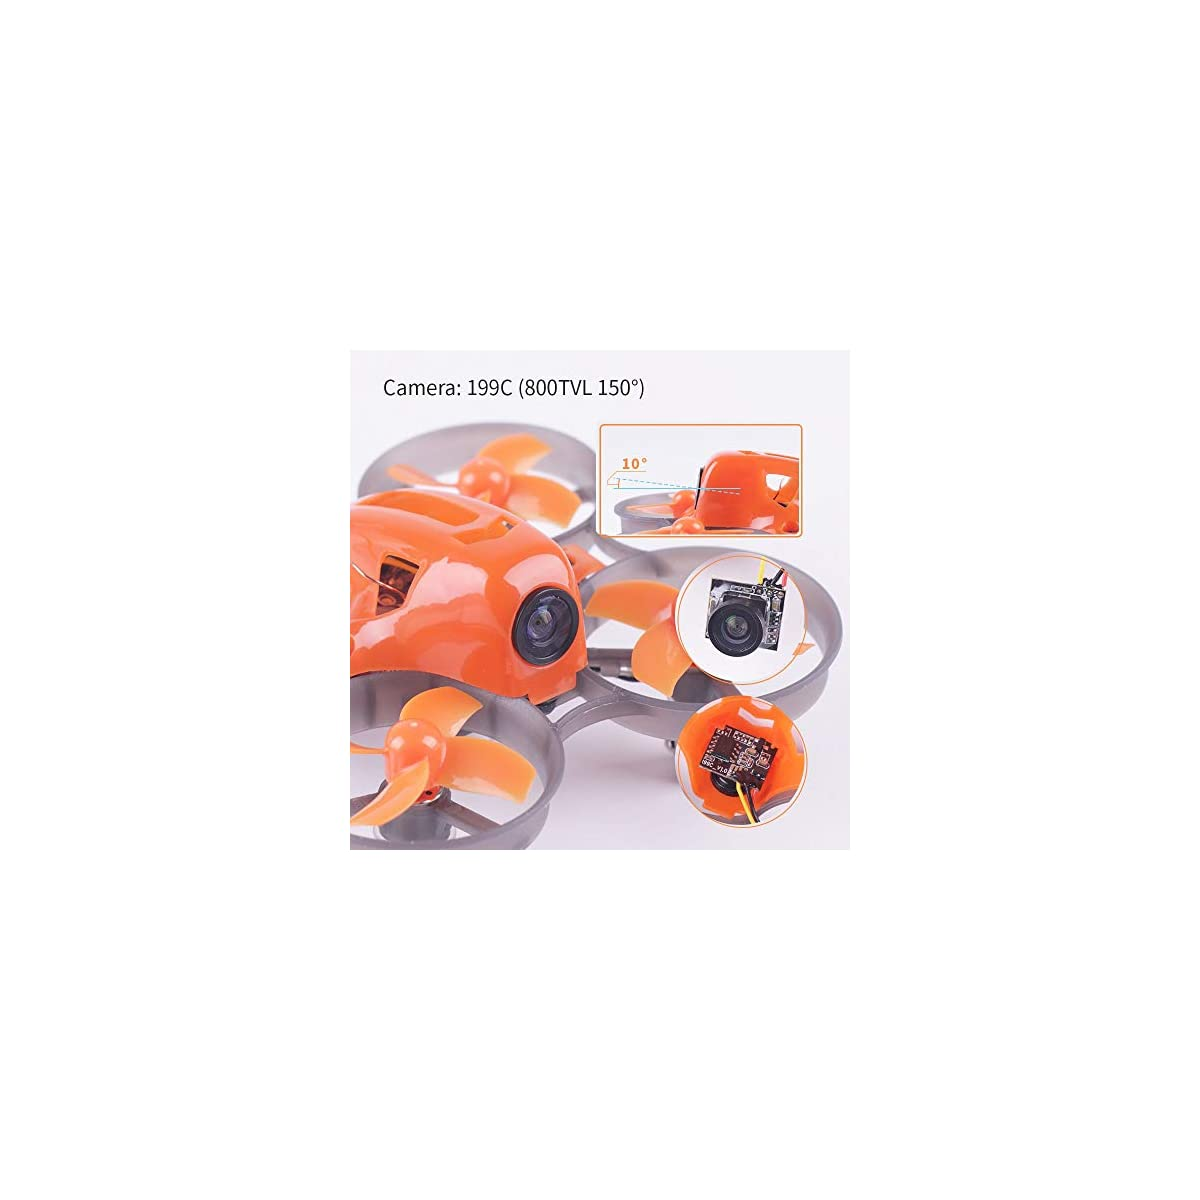 Armor 65 Plus Micro FPV Racing Drone 65mm Whoop Quadcopter F3 FC Frsky Receiver